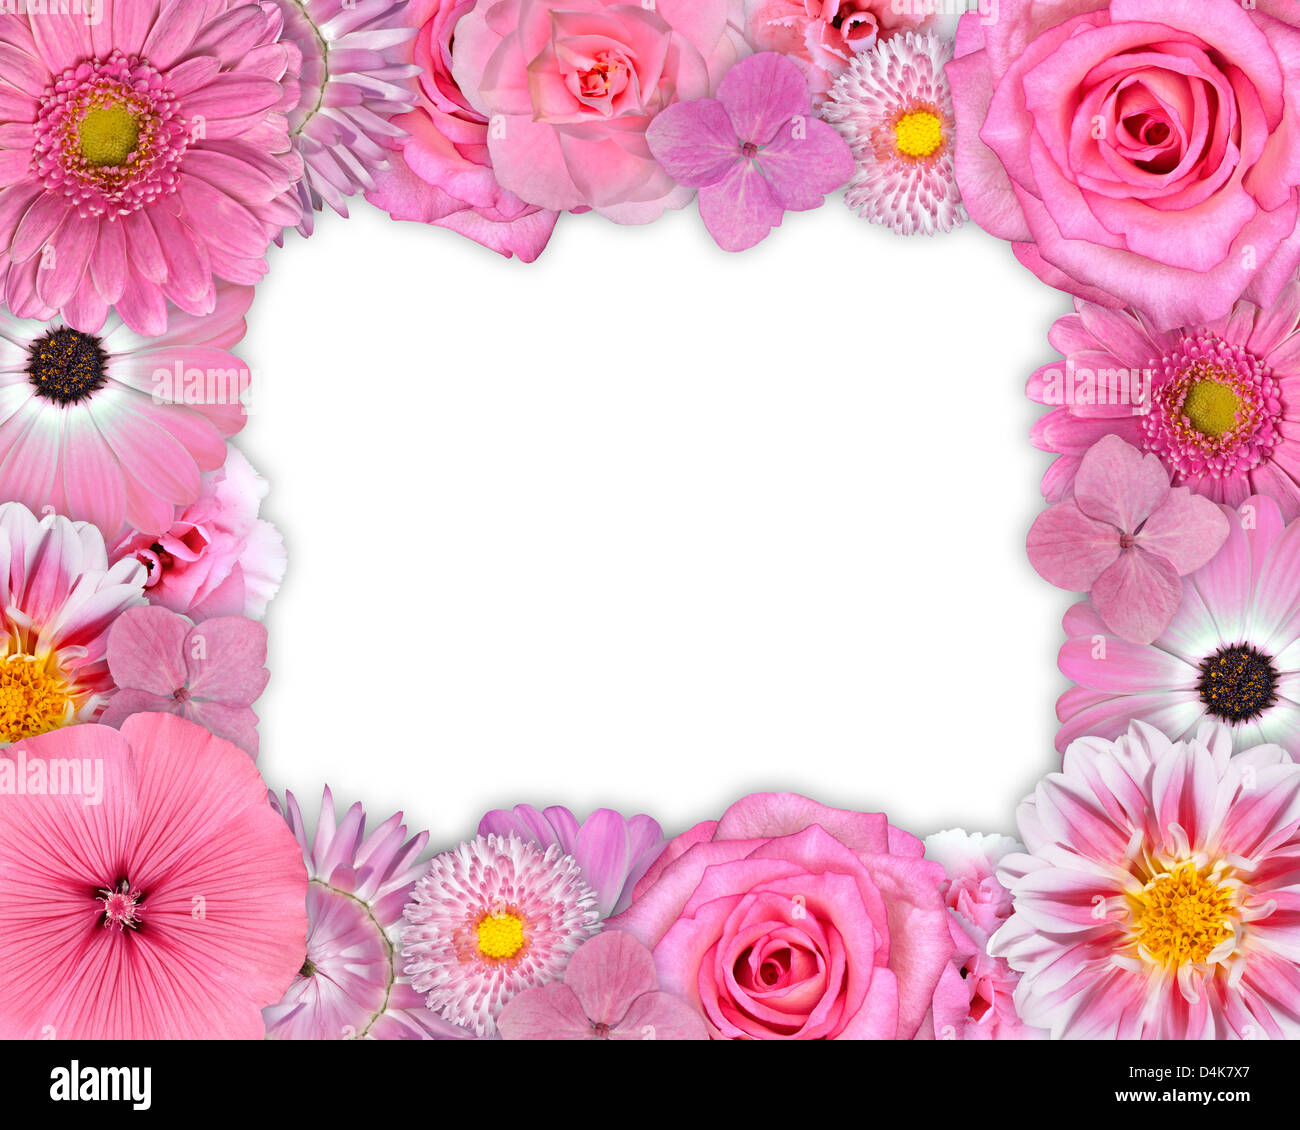 Flower frame pink yellow background white set dahlia chrysanthemum flower frame pink yellow background white set dahlia chrysanthemum daisy cornflower petunia carnation isolated collection osteos mightylinksfo